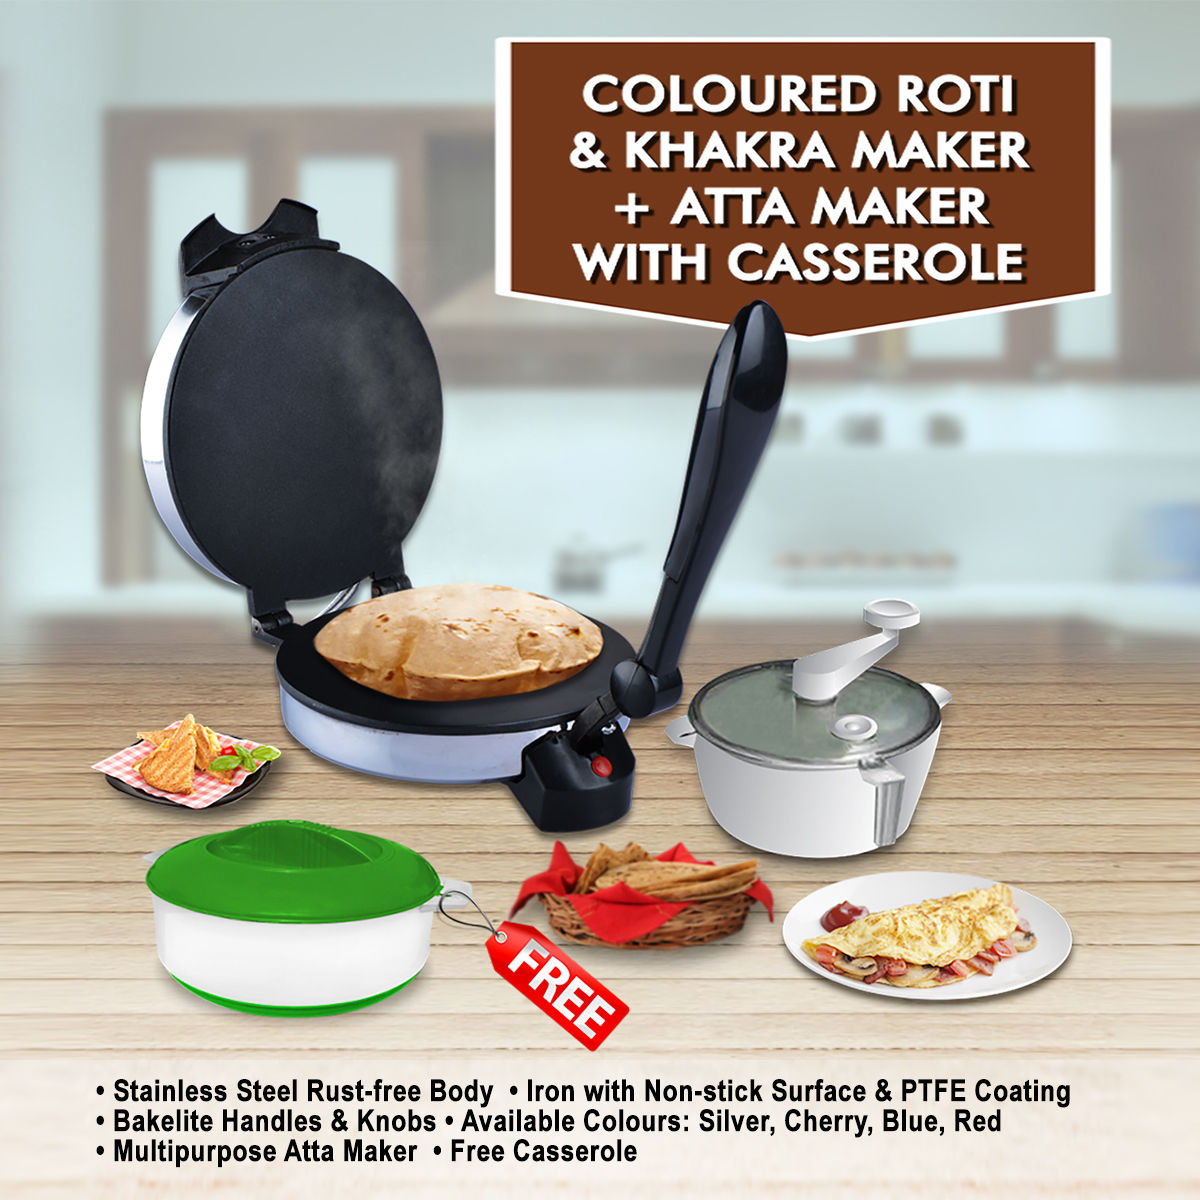 Buy Coloured Roti And Khakra Maker Atta Maker With Free Casserole